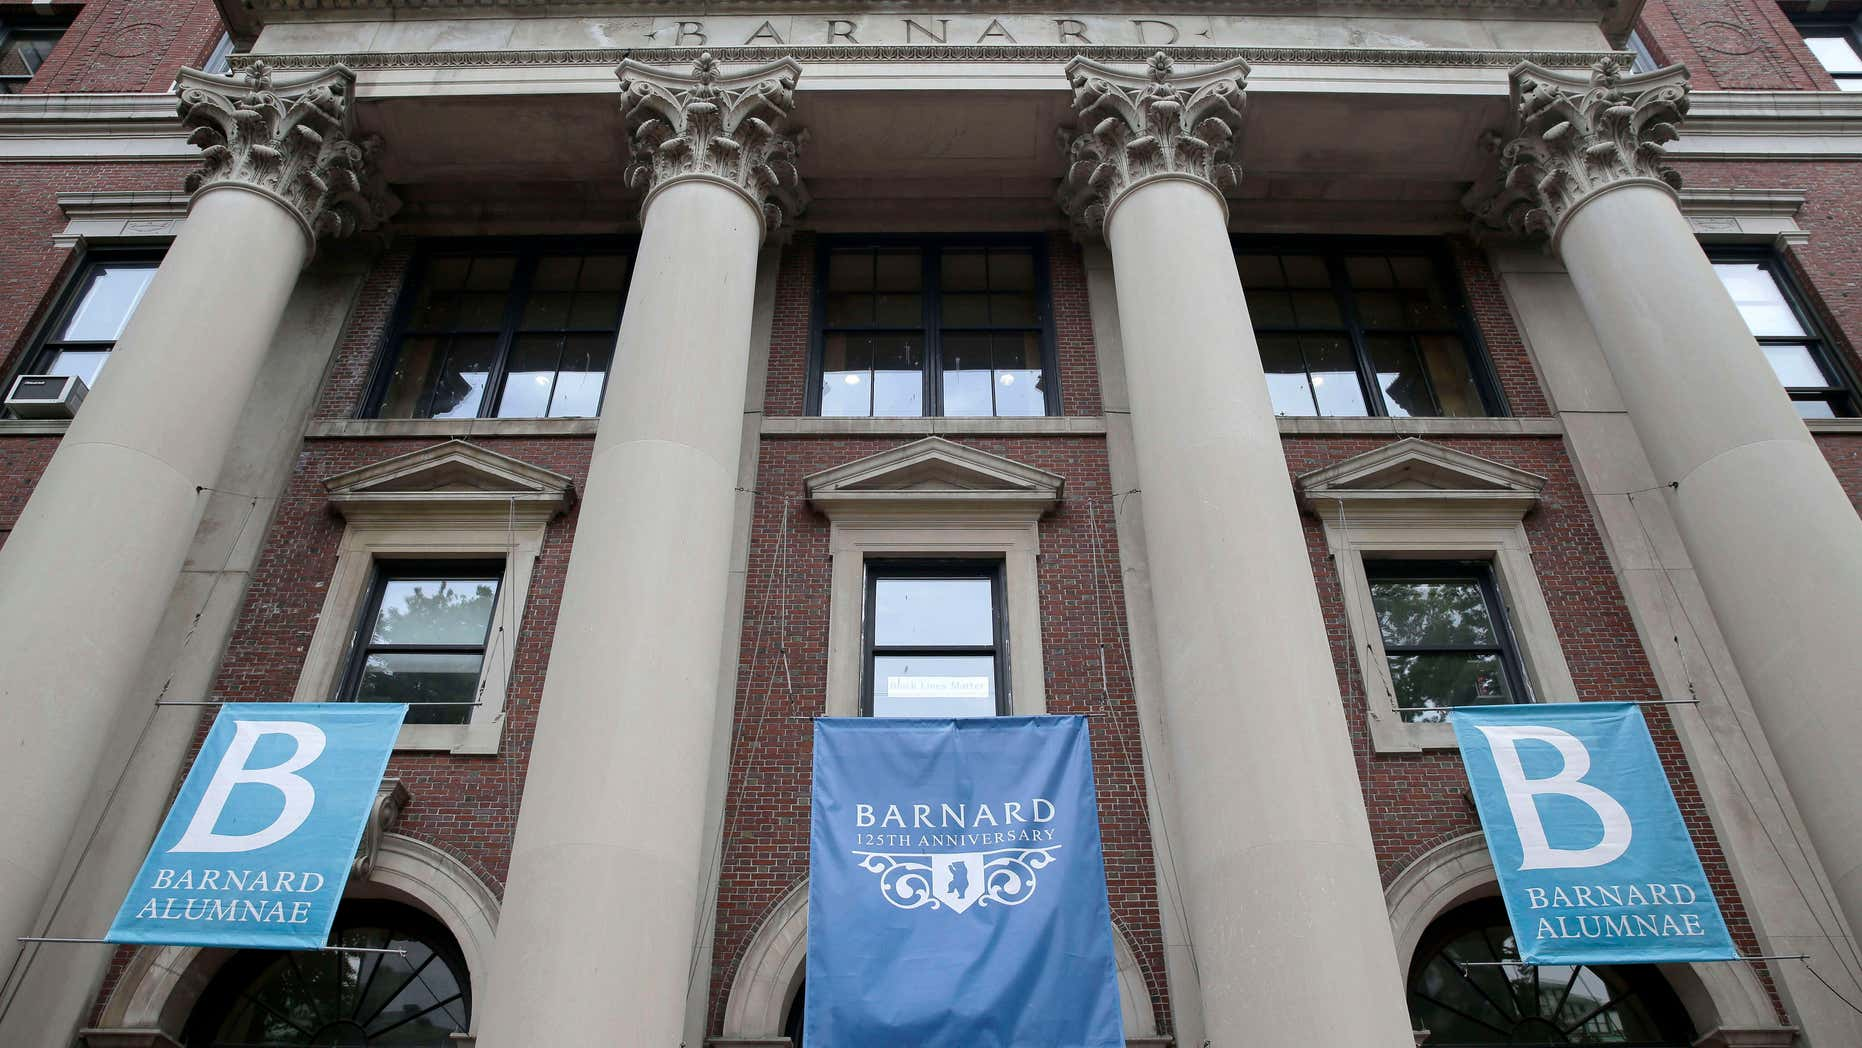 May 28, 2015: Banners hang from a building at Barnard College in New York.